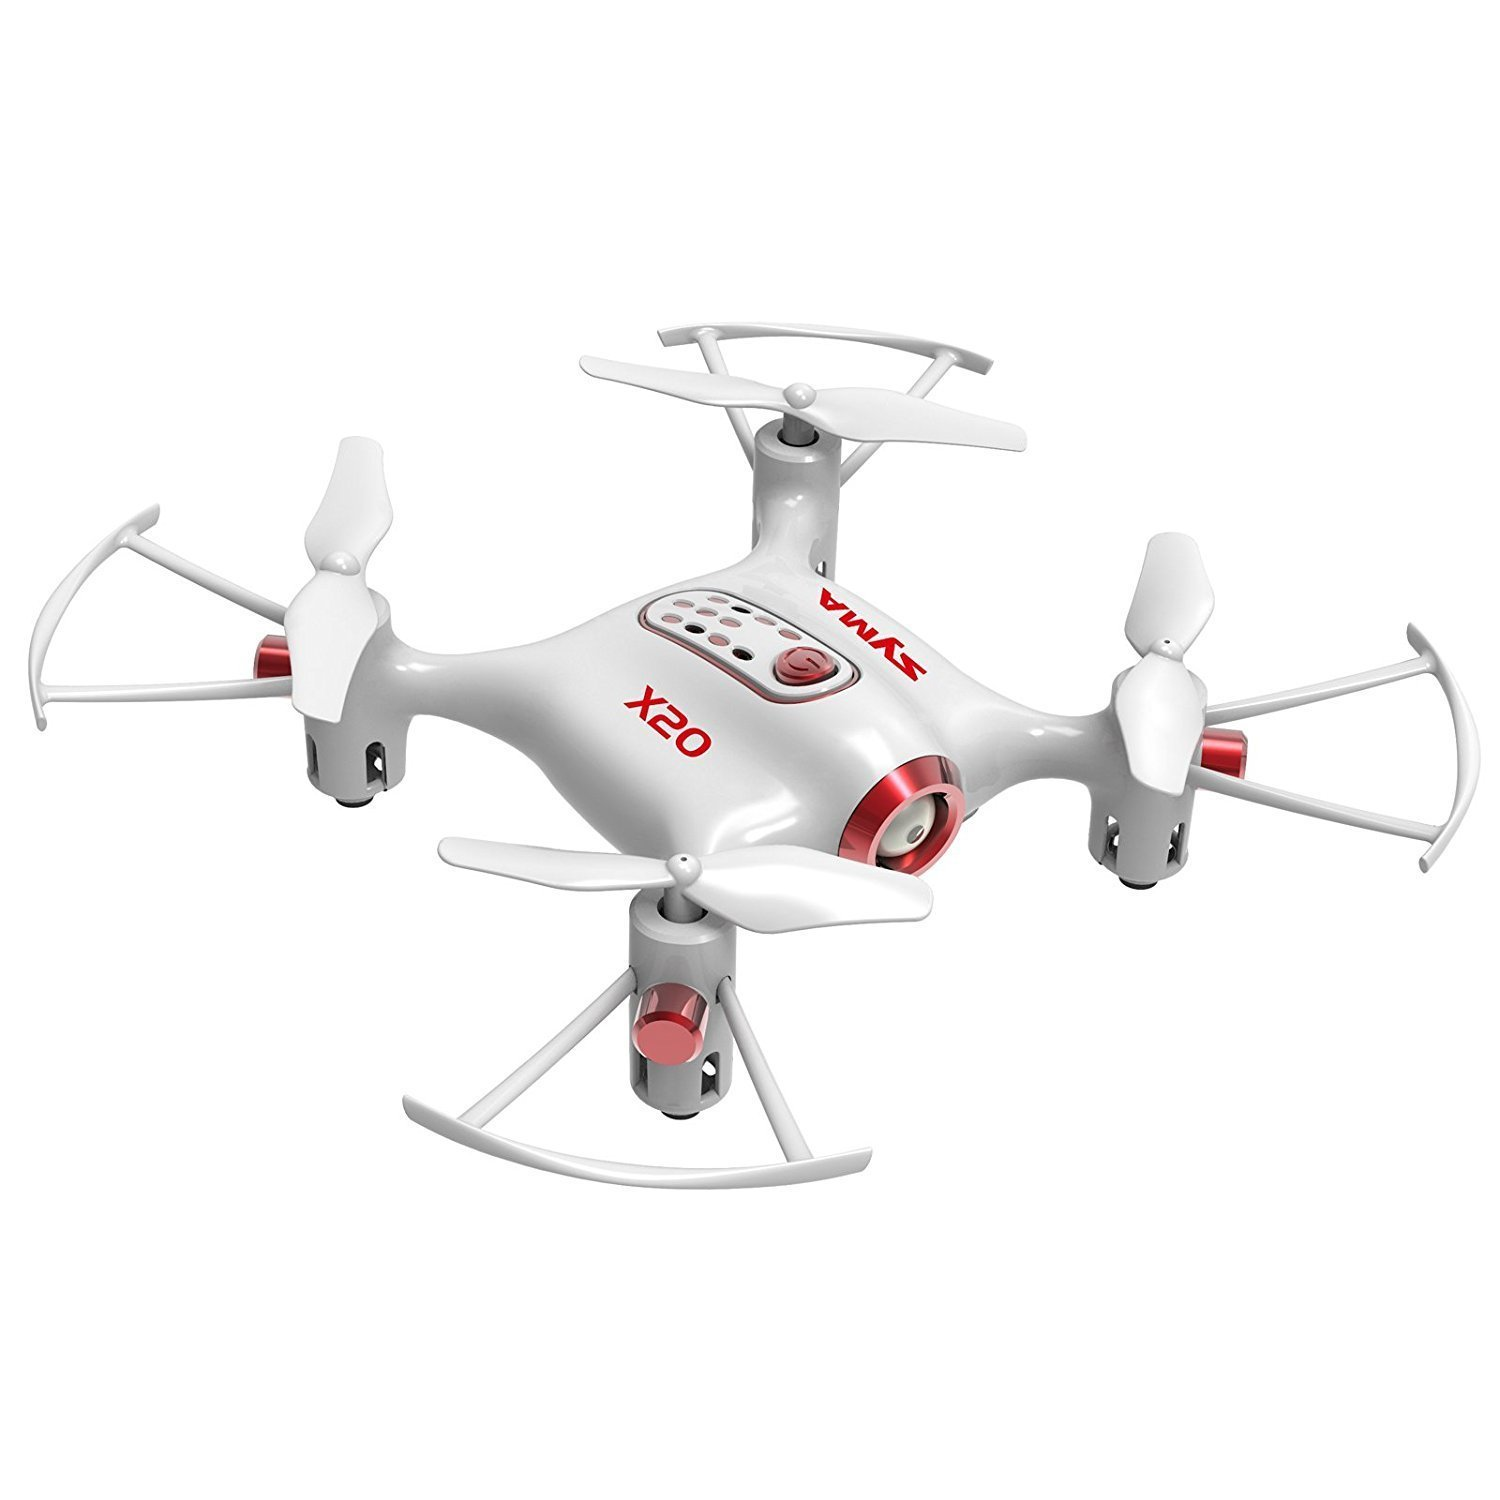 Cheerwing Syma X20 Mini Drone